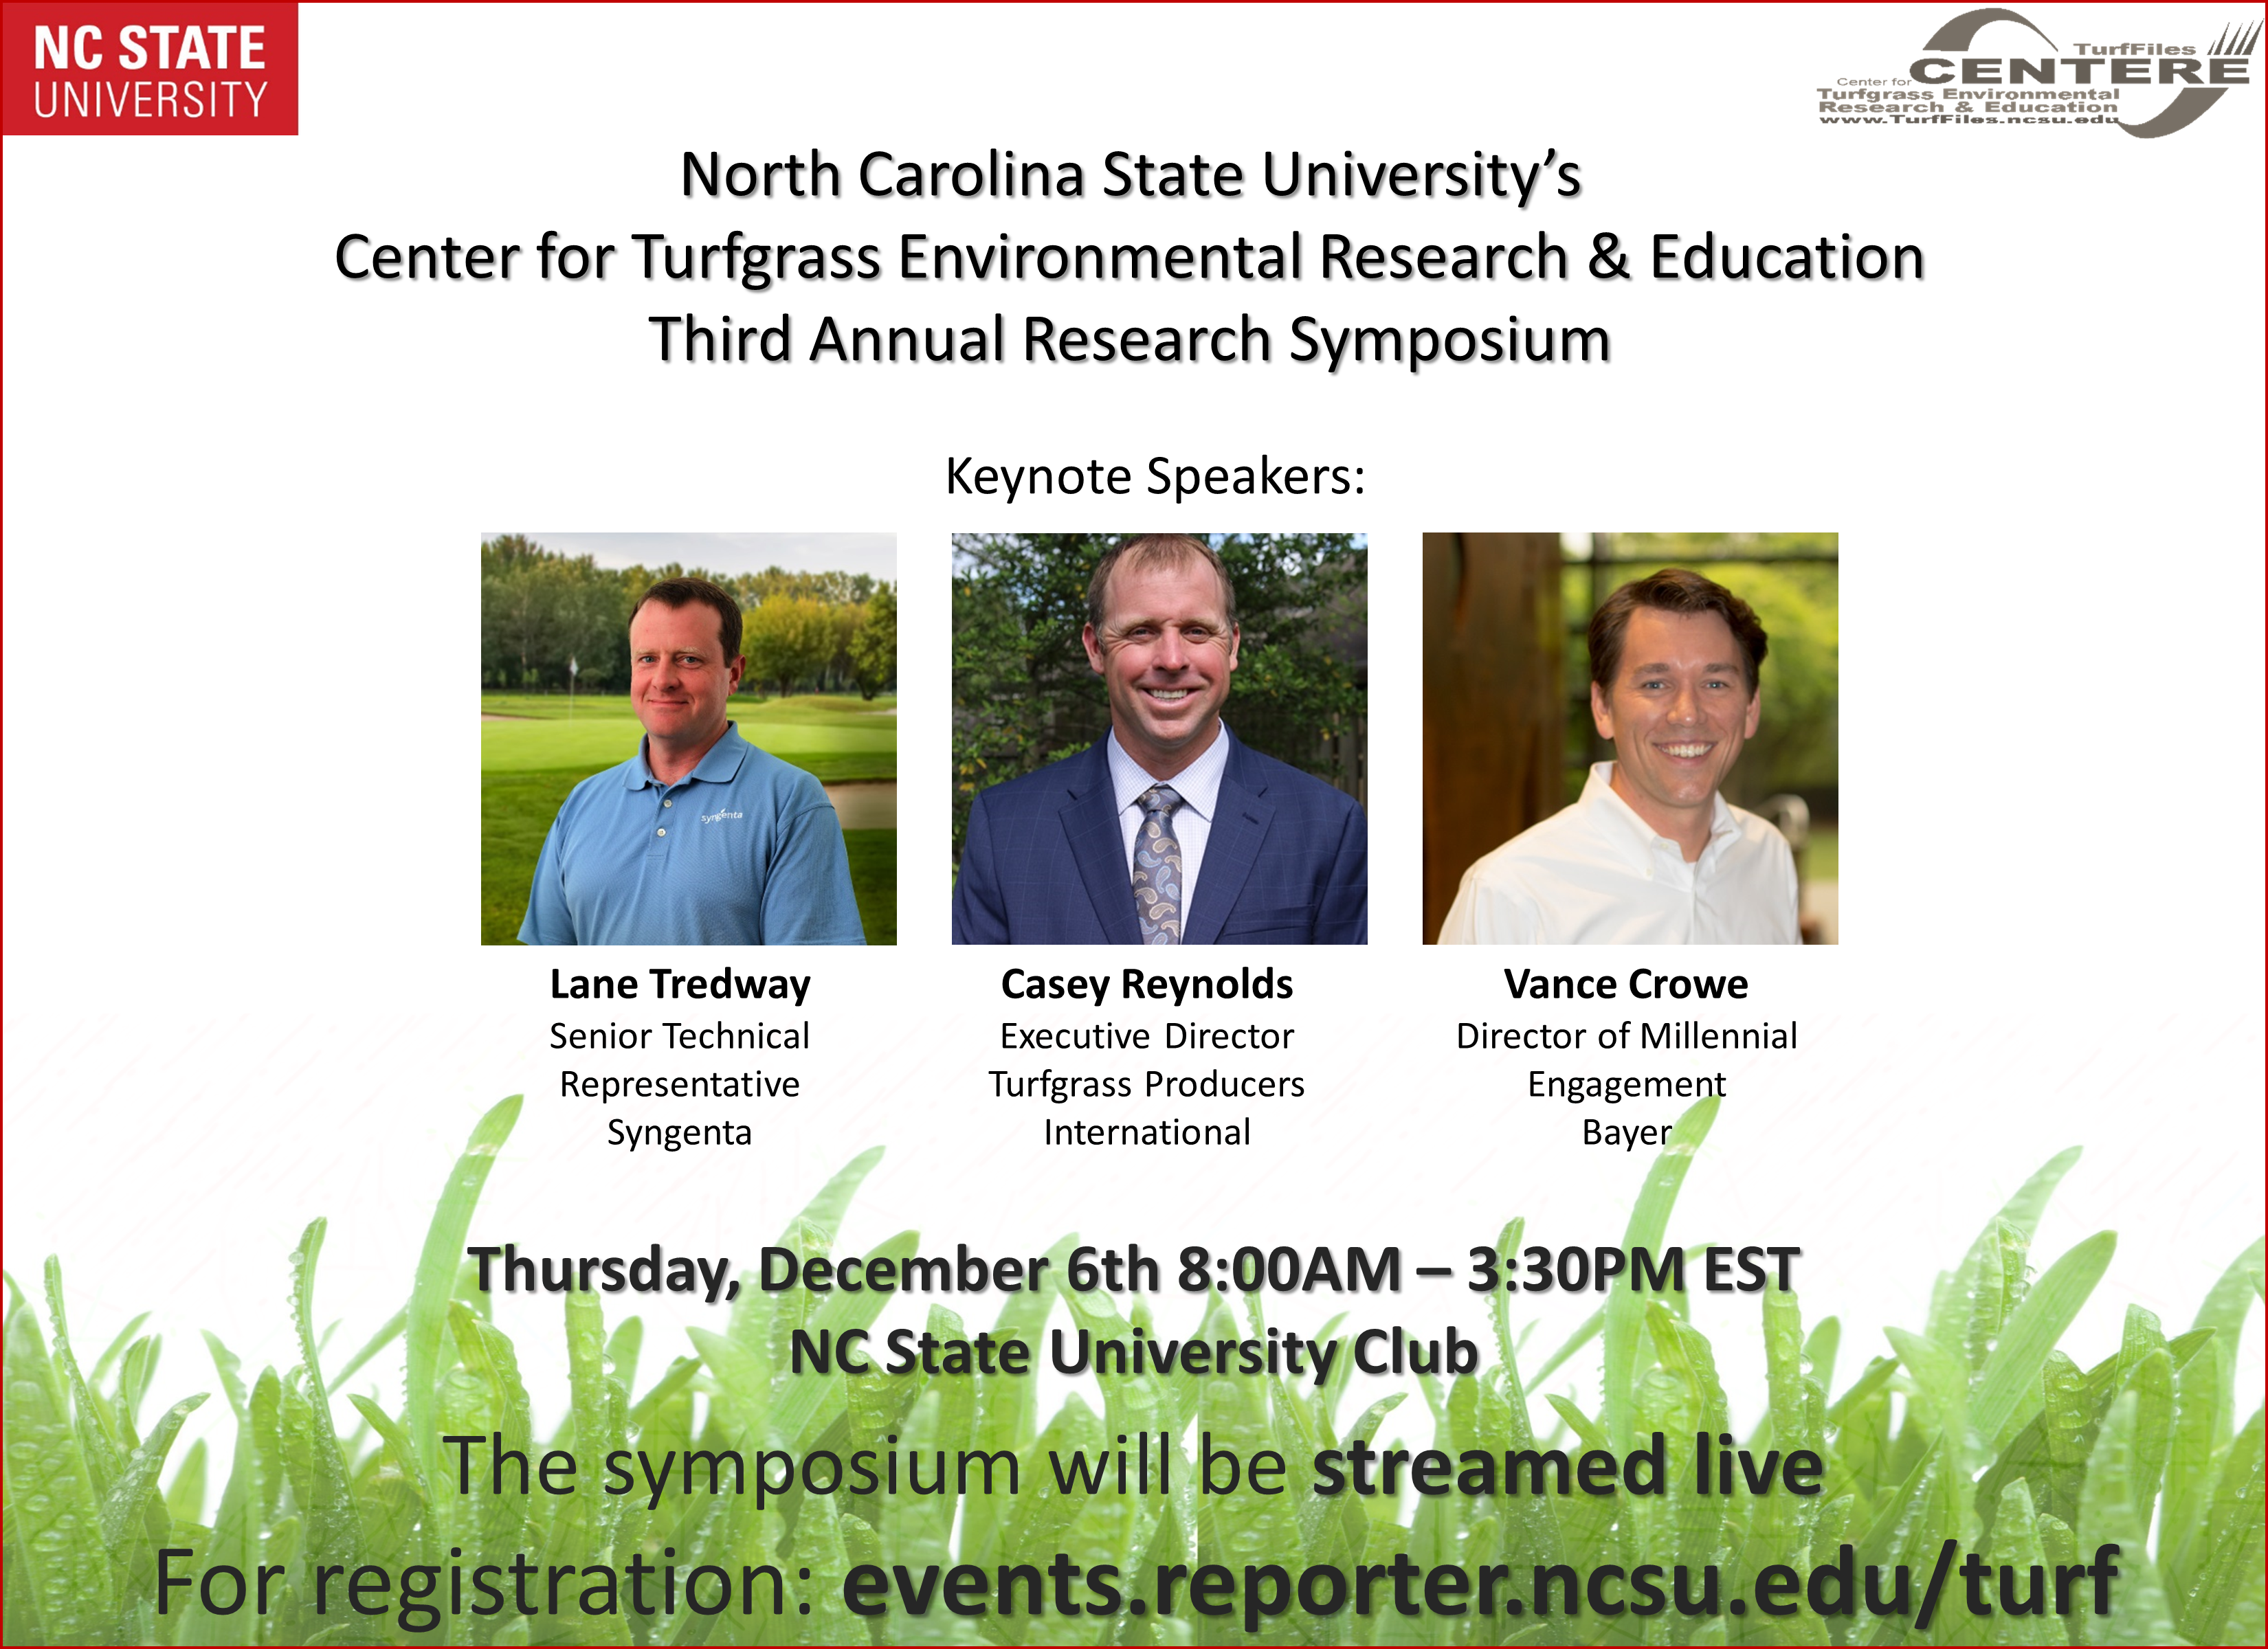 TPI on program at Third Annual NCSU Turfgrass Research Symposium